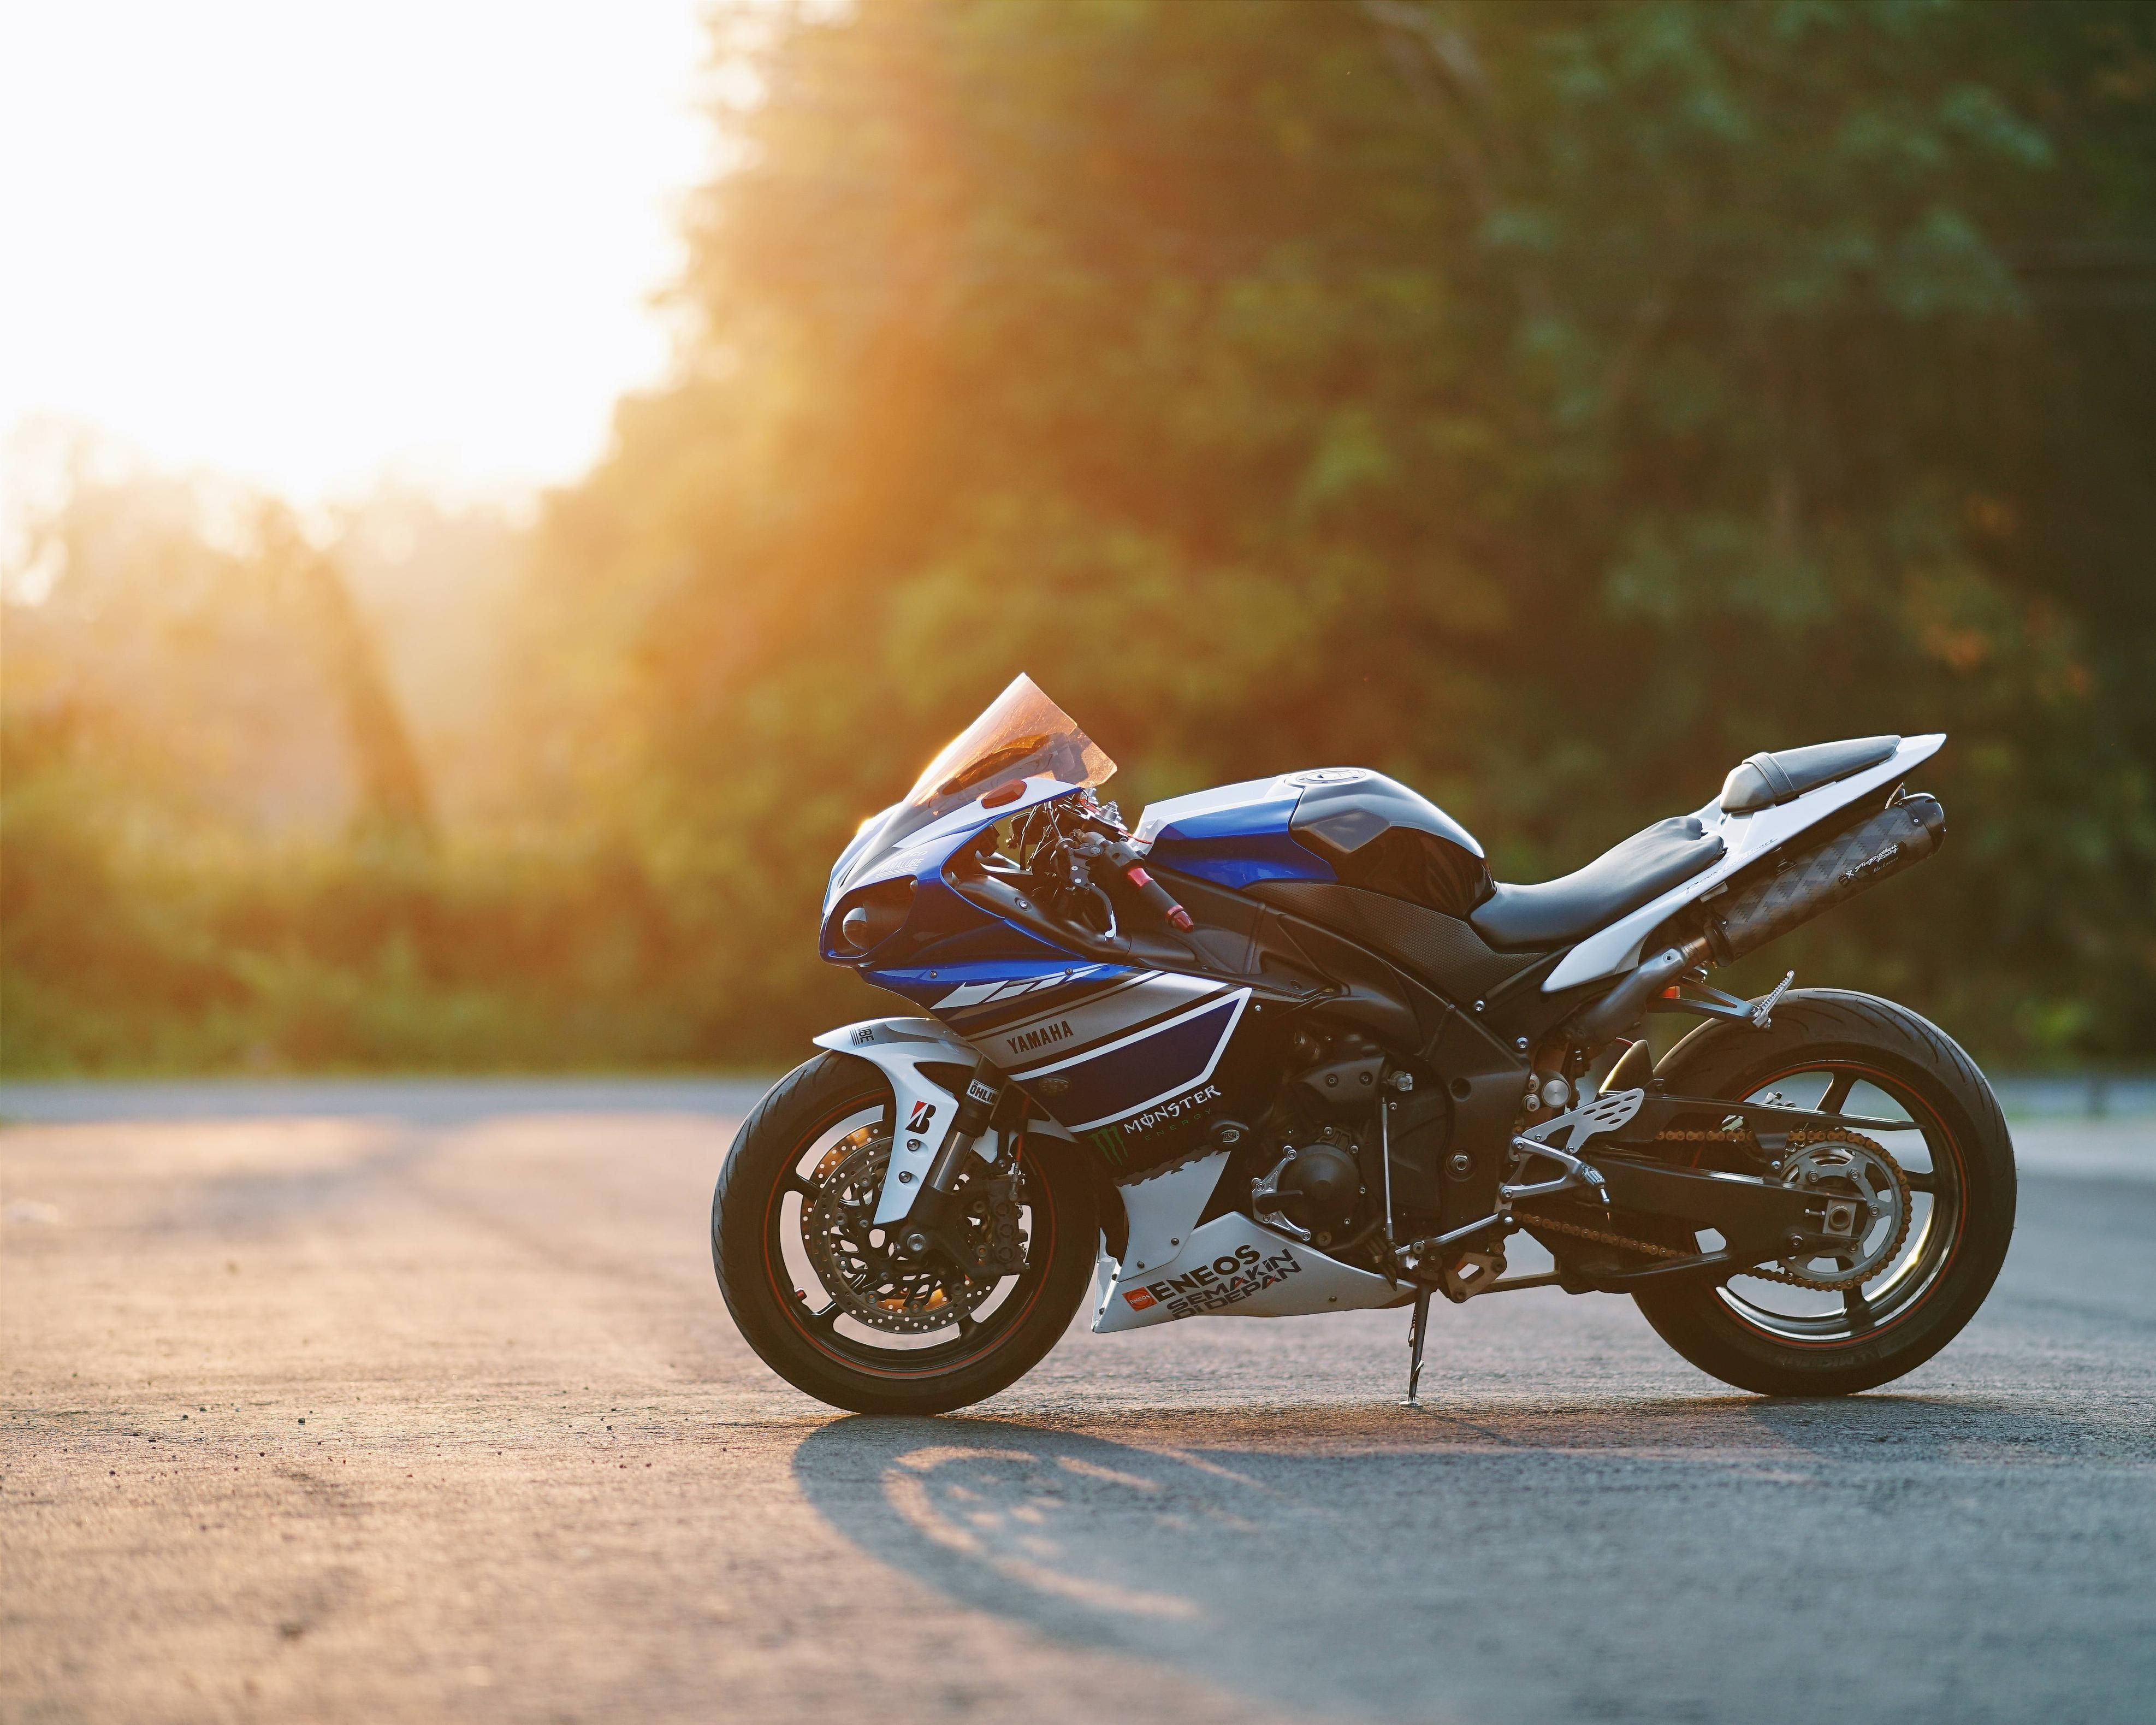 Yamaha R1 Hq Backgrounds Yamaha R1 Yamaha Yzf R1 Yamaha